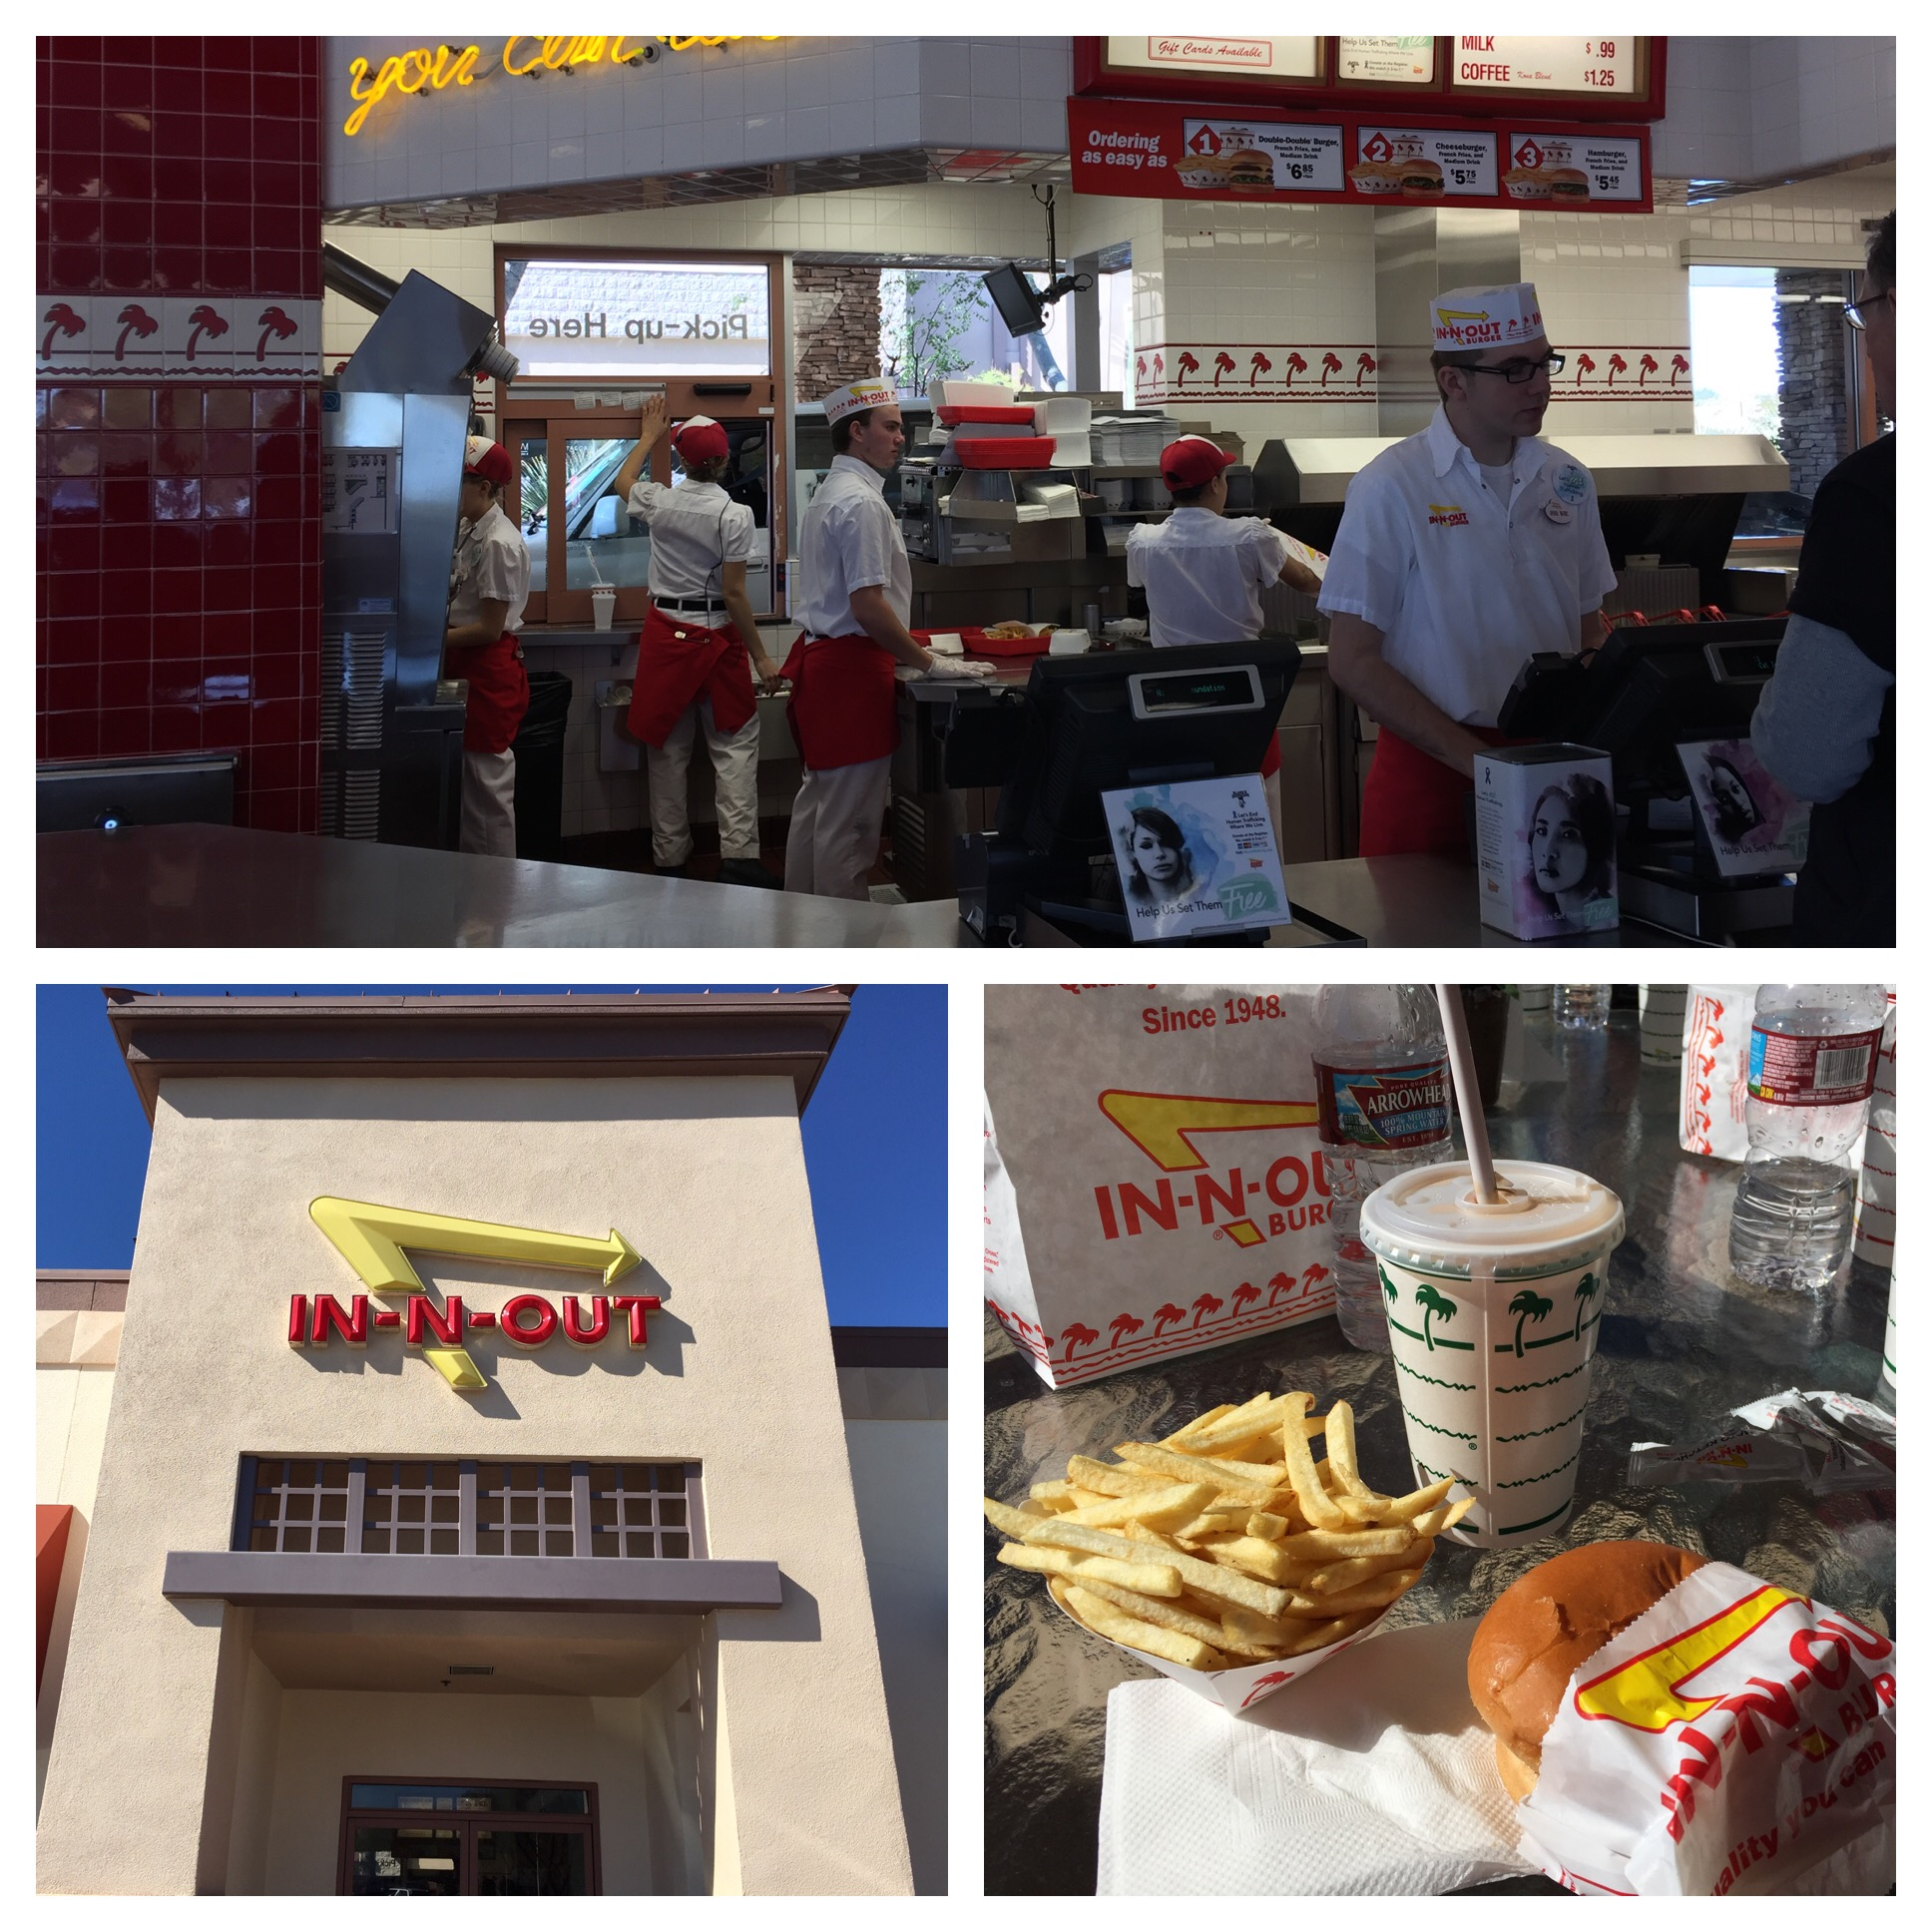 Burgers, Fries and Chocolate Shakes for everyone. Yumm! It never disappoints!